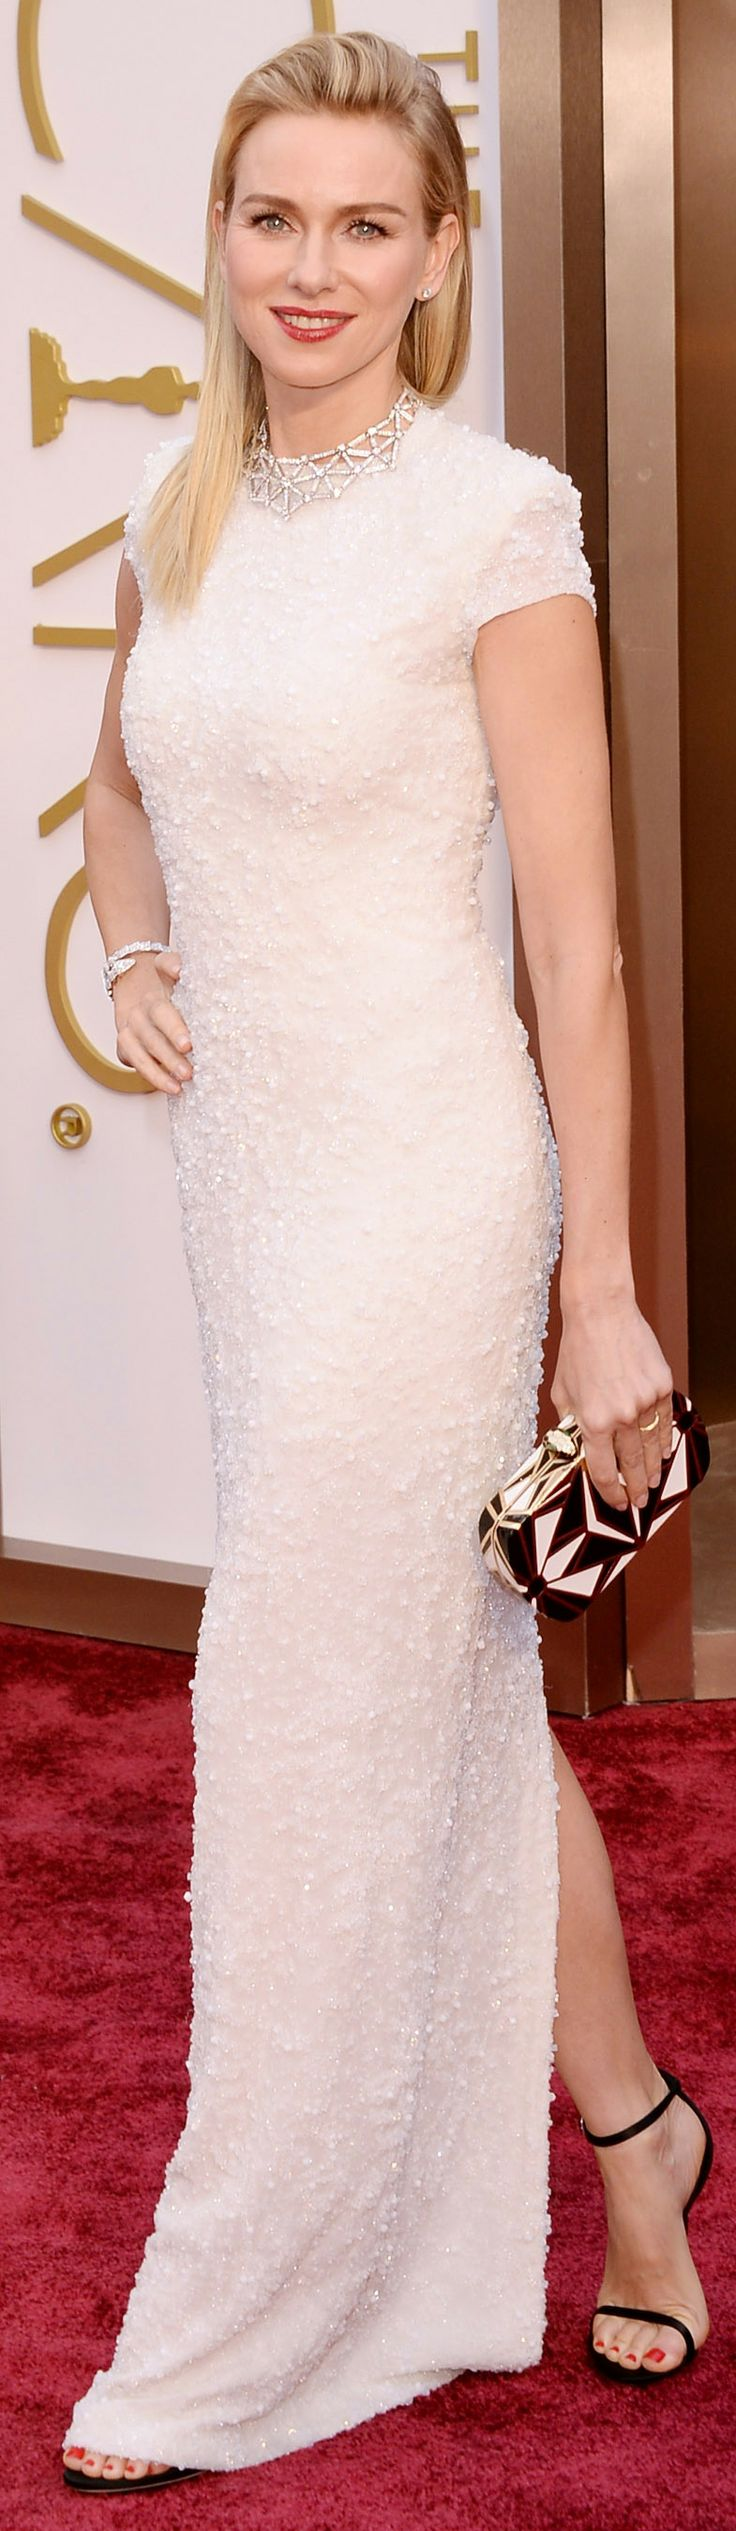 Naomi Watts in a custom Calvin Klein Collection gown for the 2014 Oscars